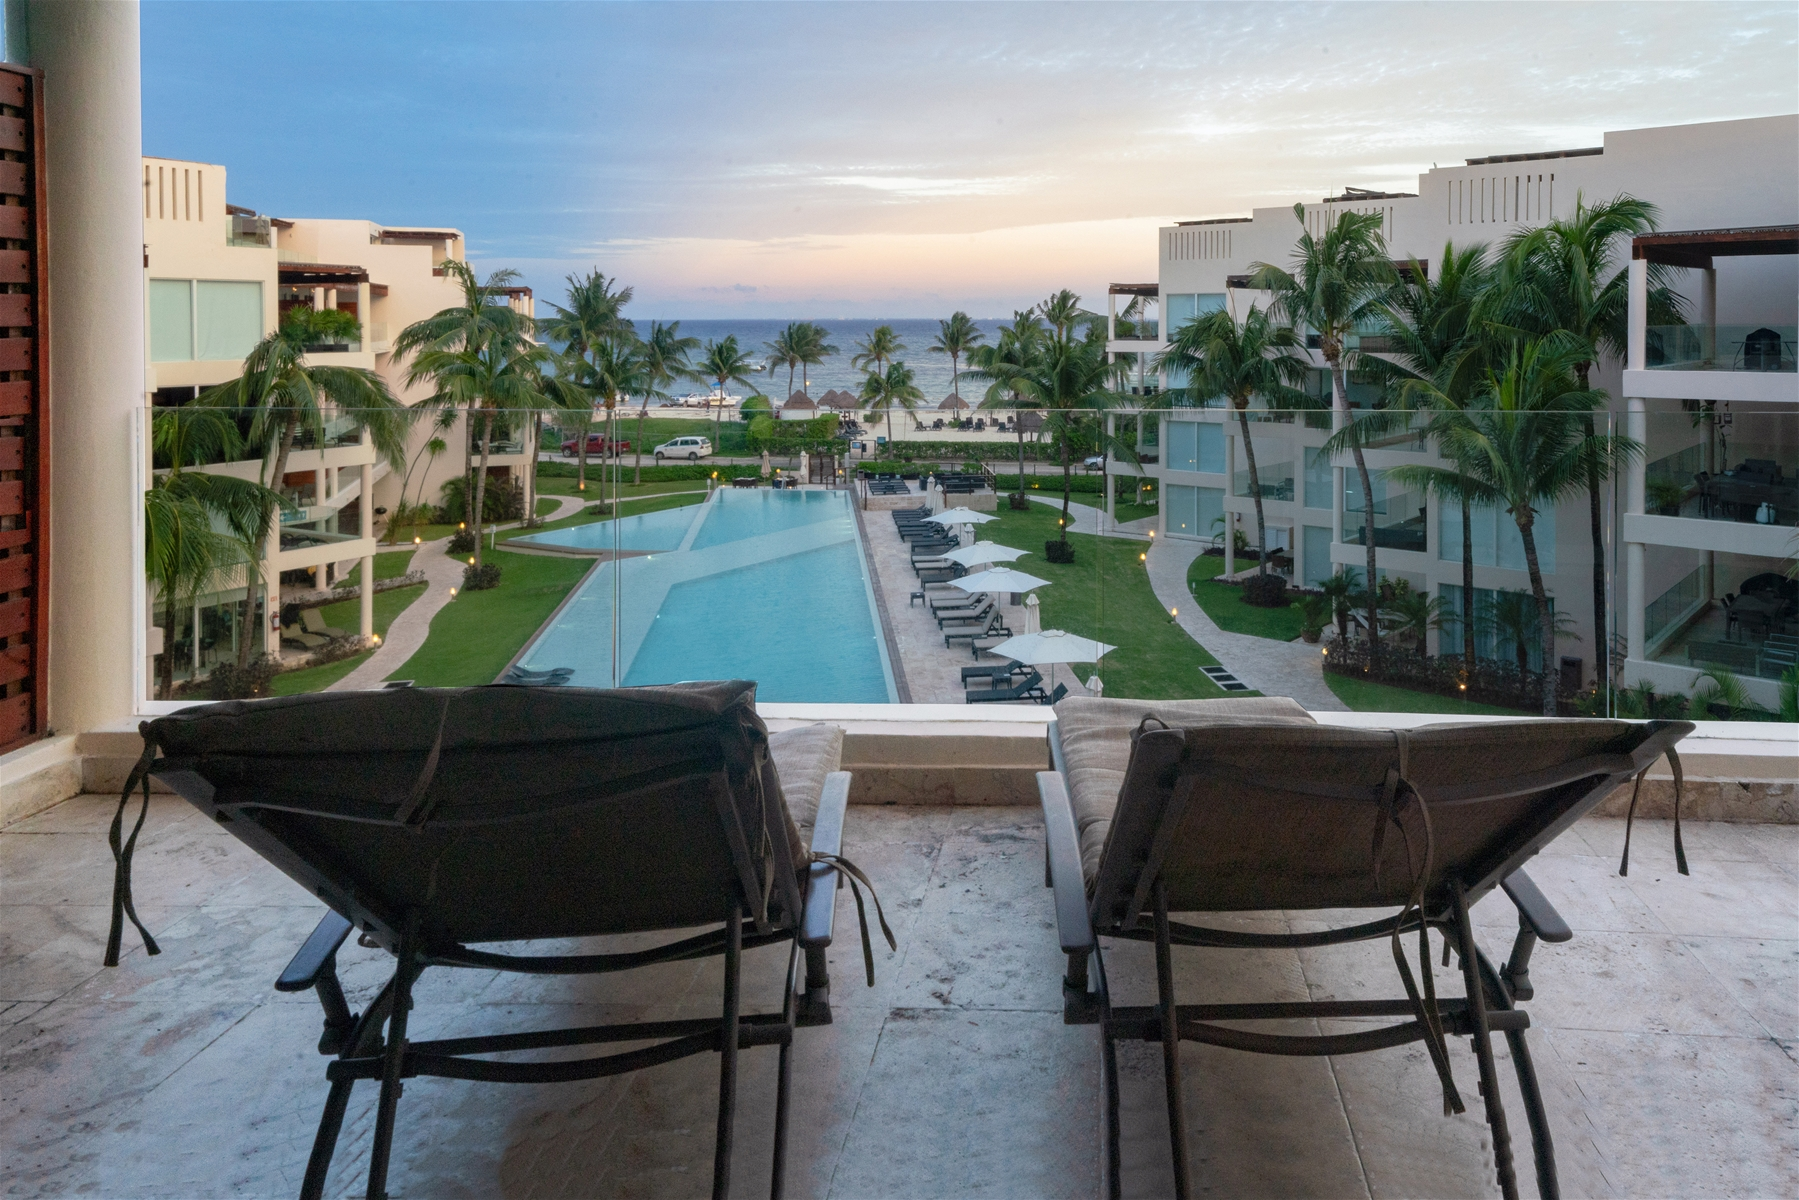 The Elements Penthouse 10 Playa del Carmen Condo Home For Sale Real Estate to Buy